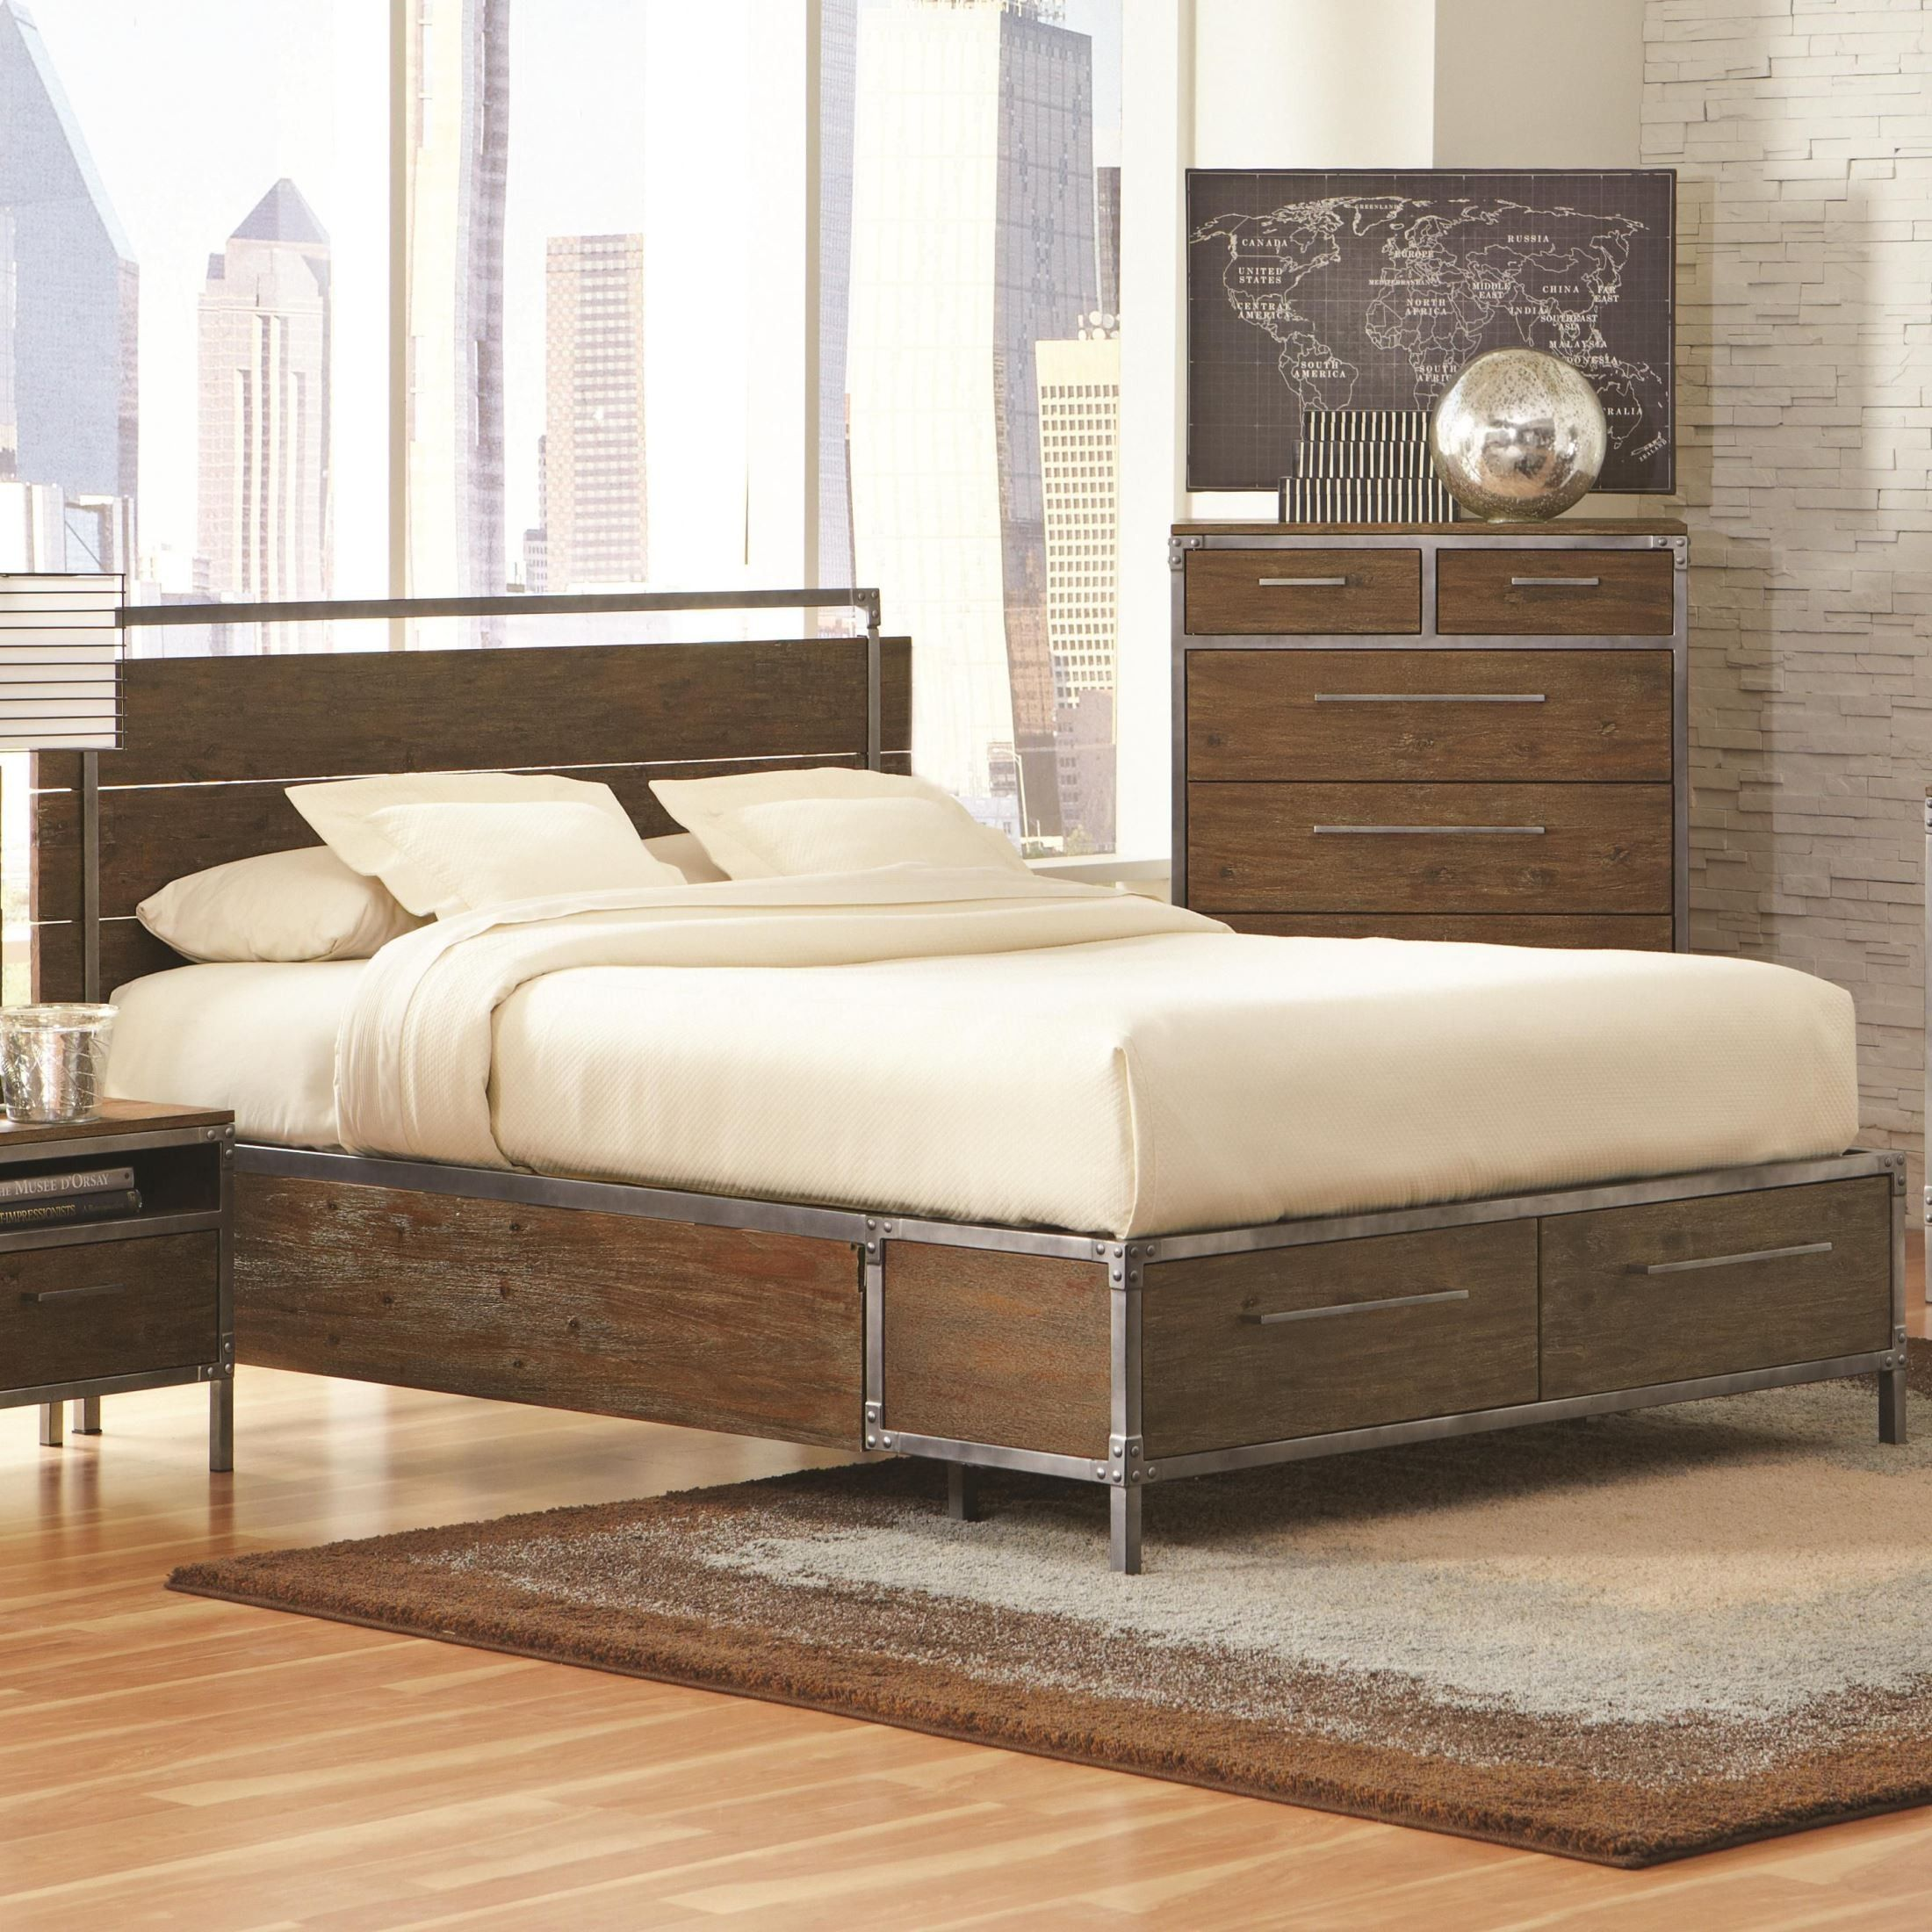 This edgy, industrial bed will be a great focal point for